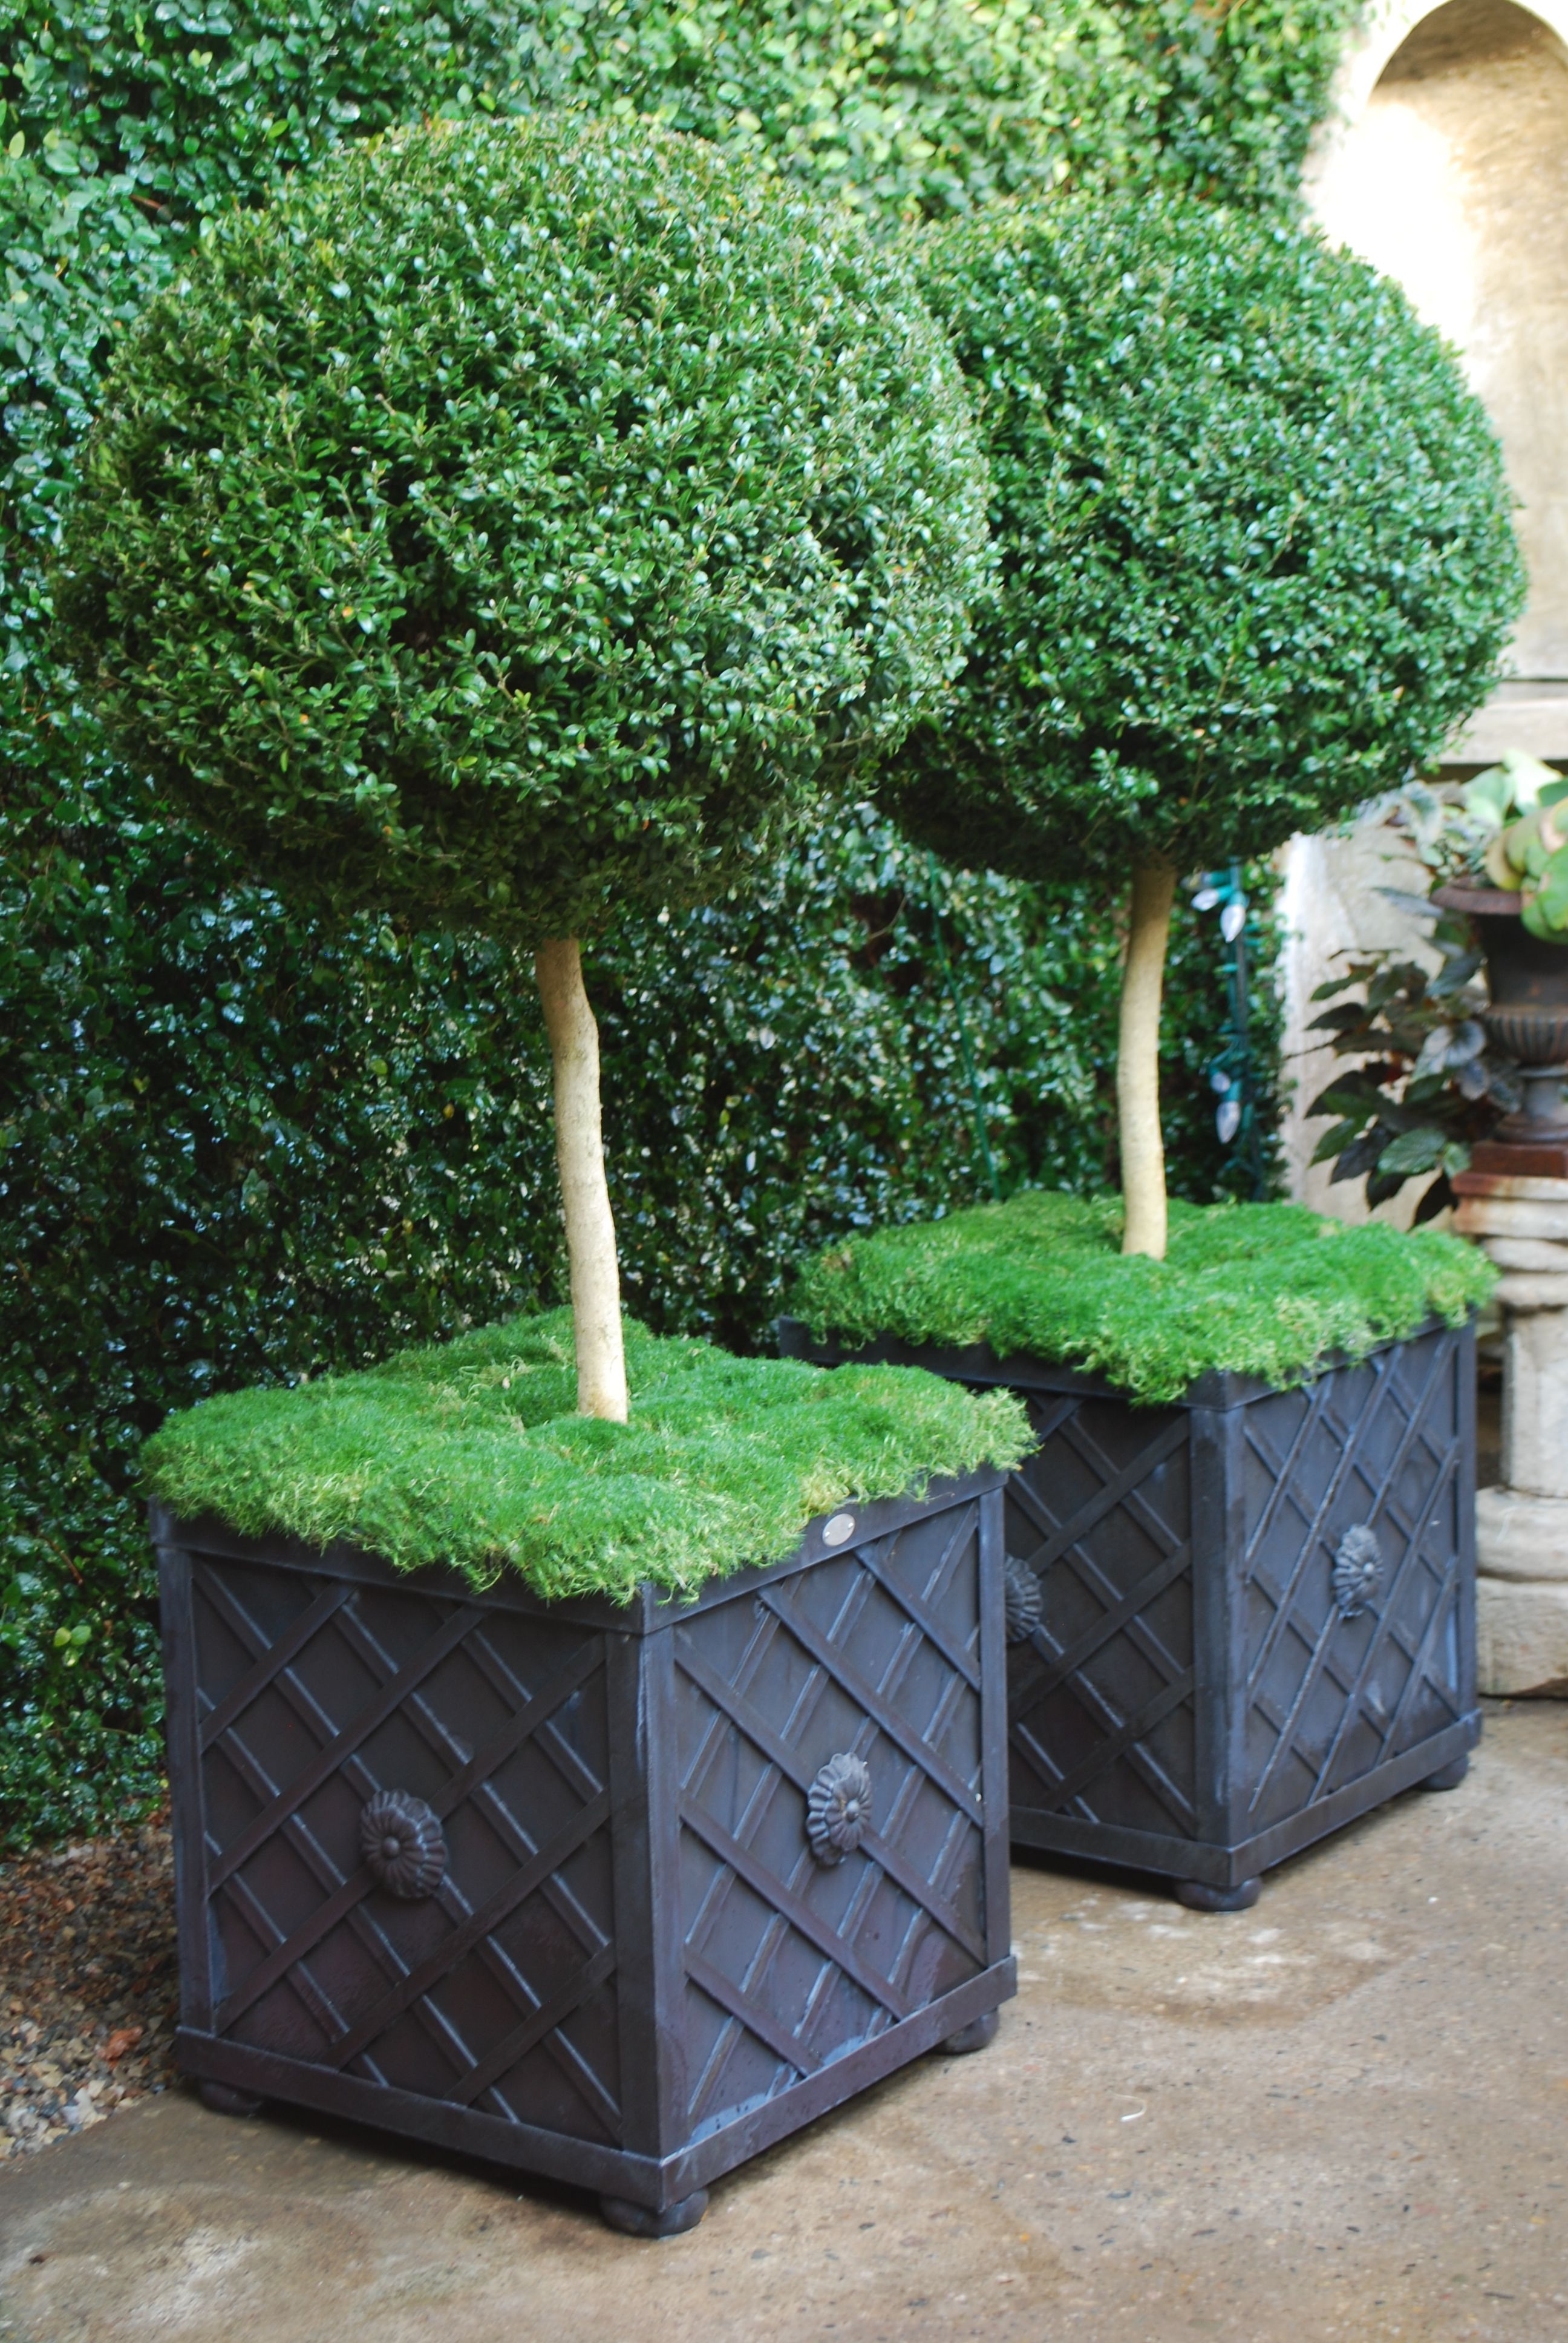 Branch Lattice Boxes With Boxwood Standards Garden Containers Pinterest Planters